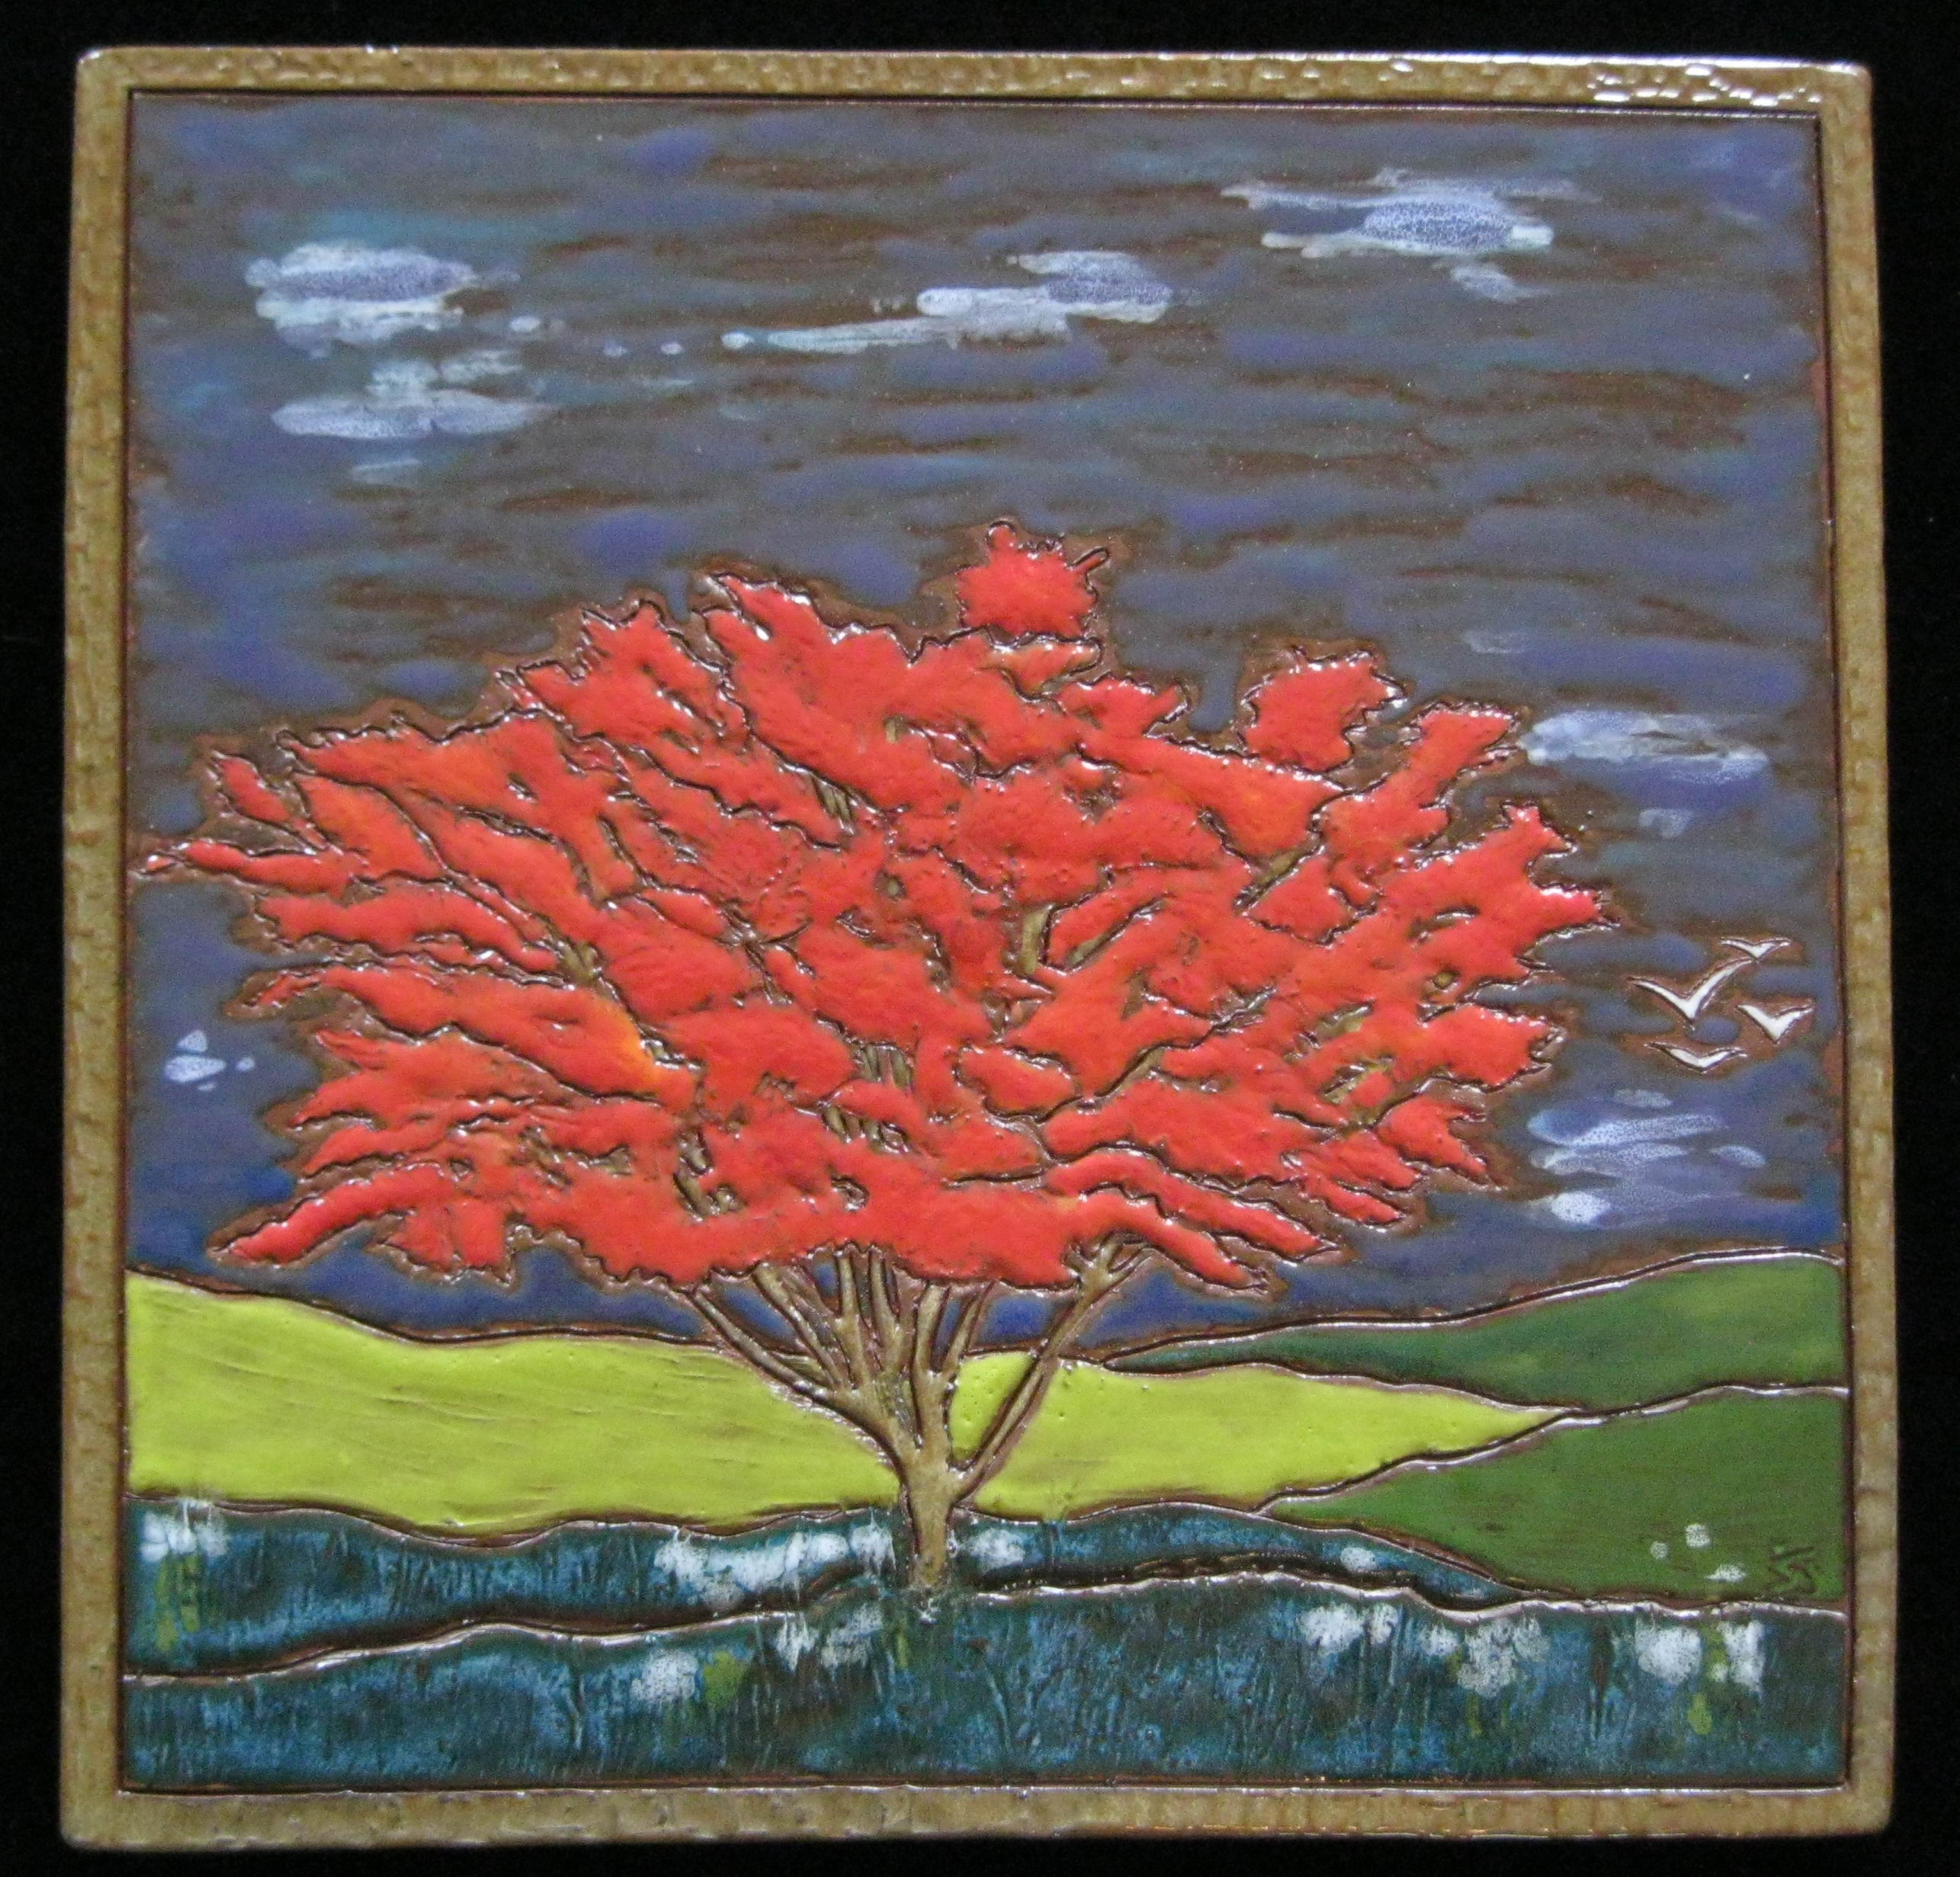 Red tree - fired - SOLD